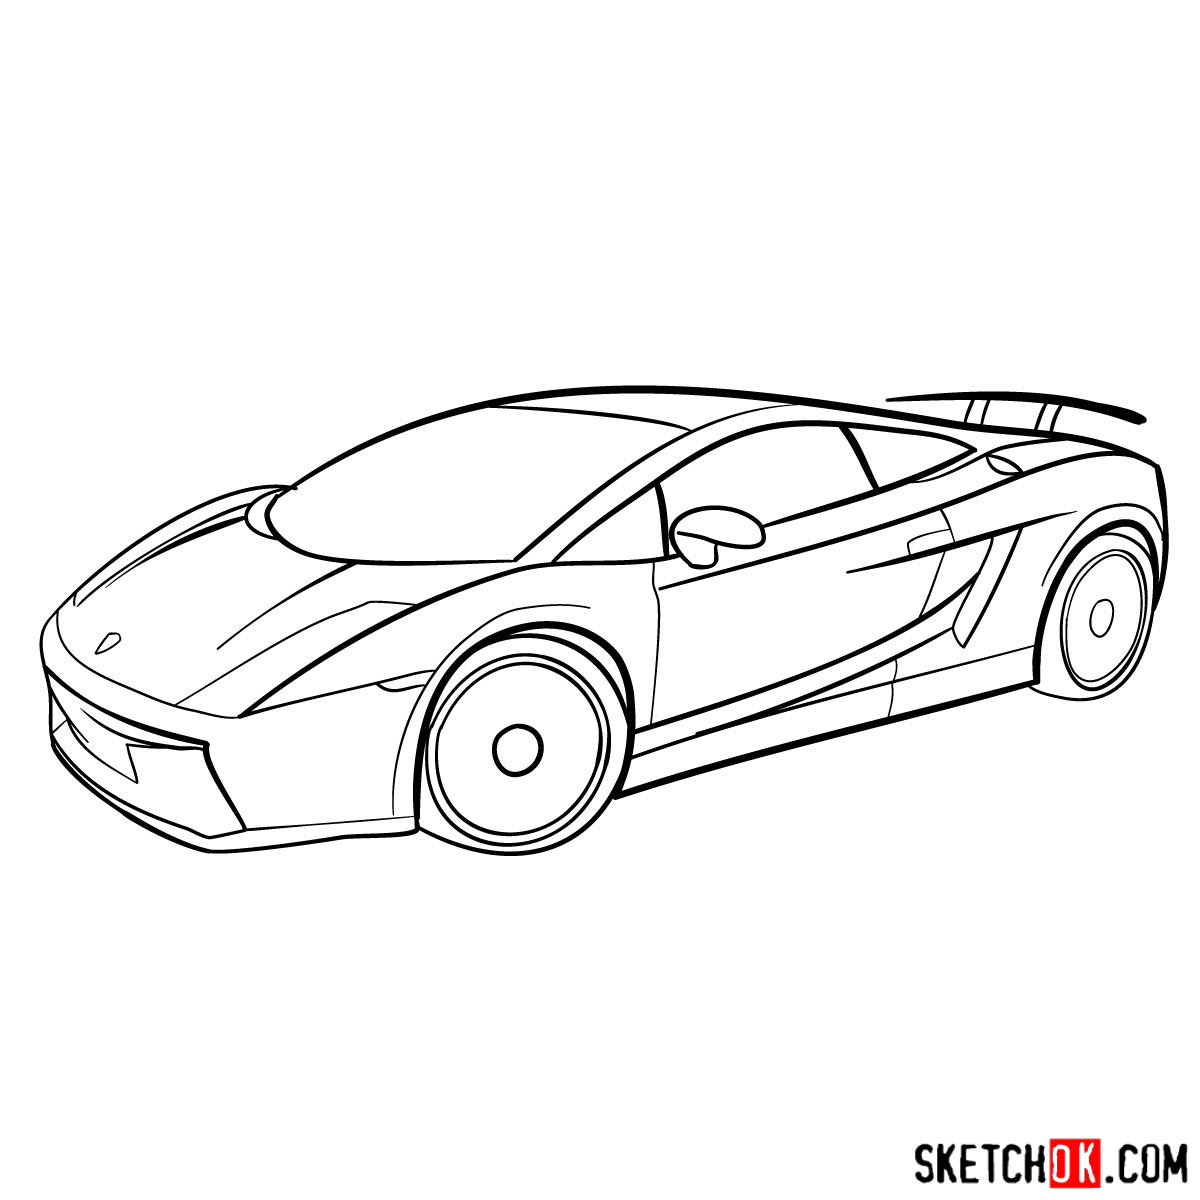 How to draw lamborghini gallardo step 11